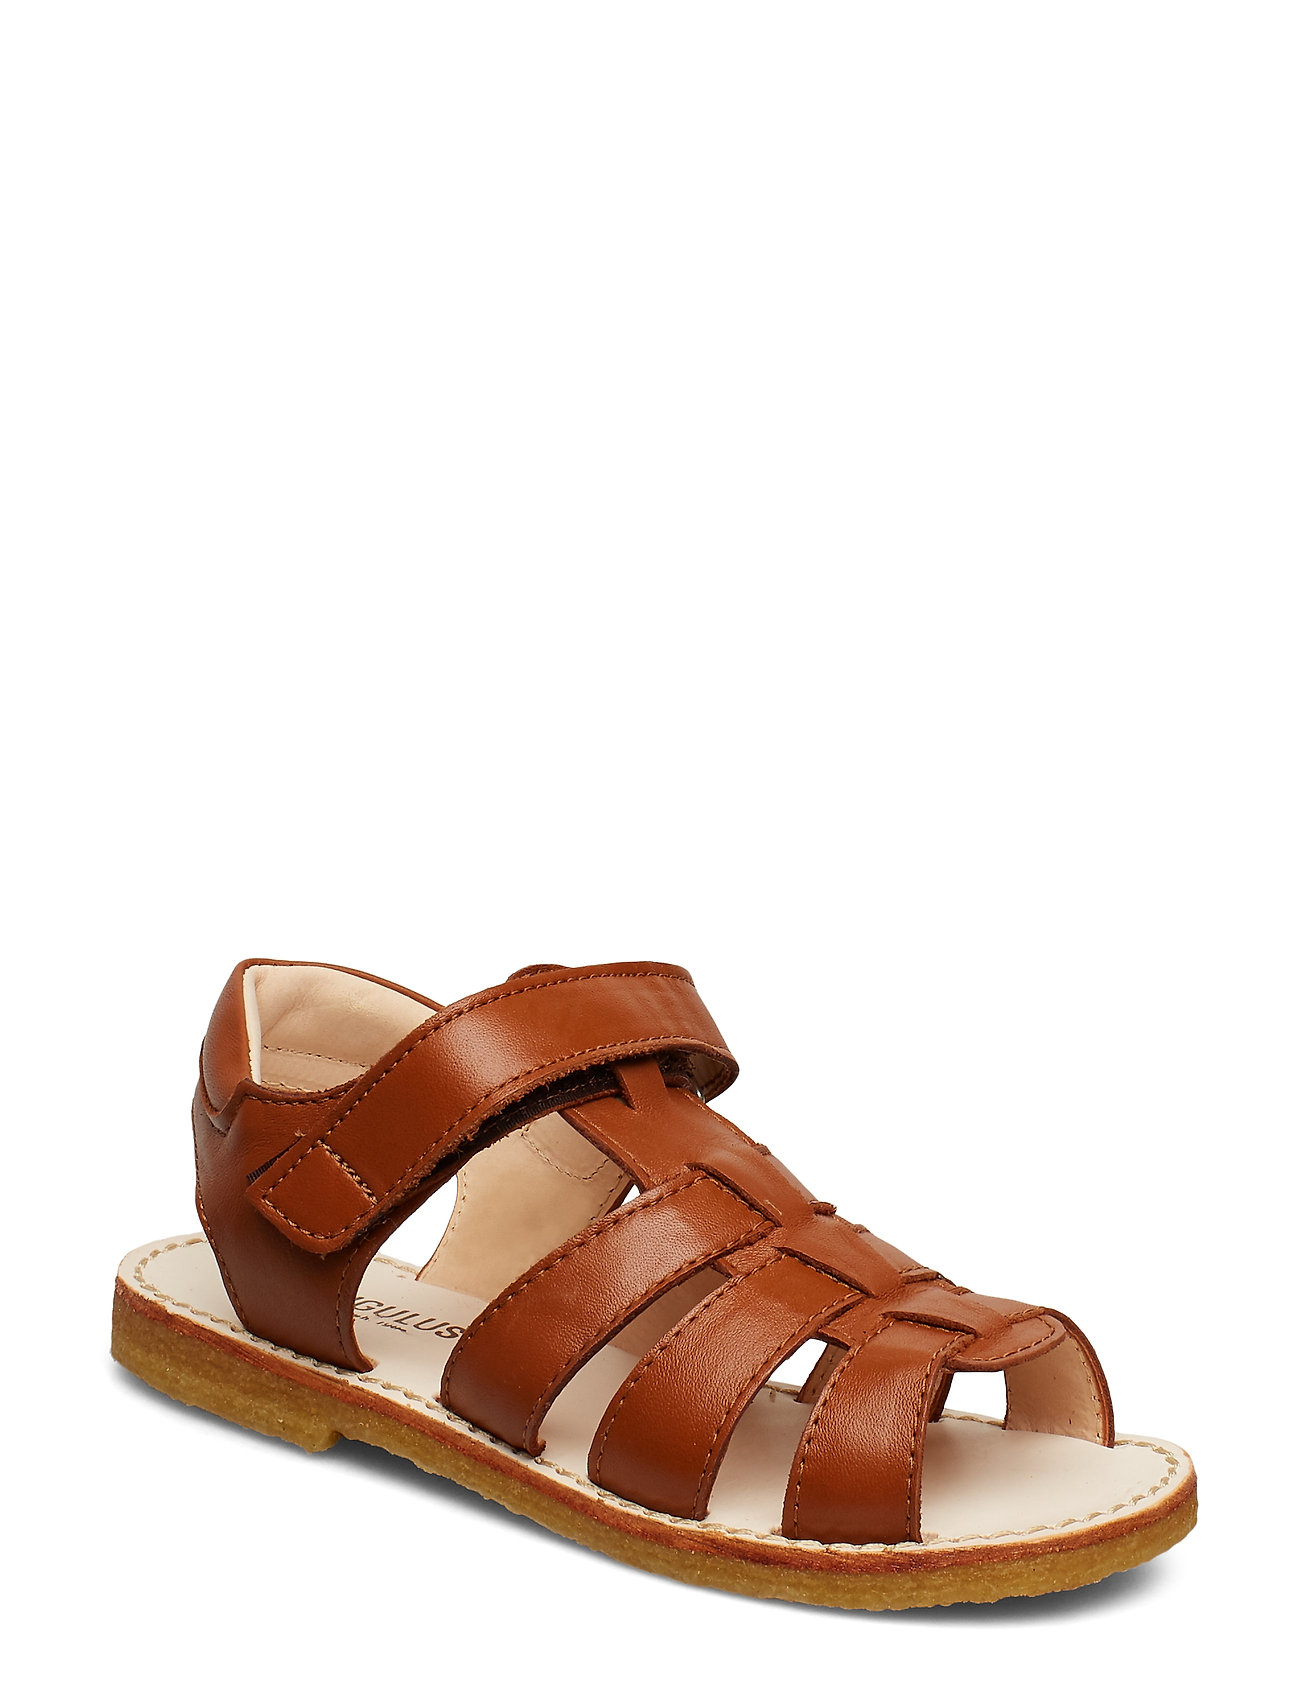 Image of Sandals - Flat - Open Toe - Op Sandaler Brun ANGULUS (3250589107)